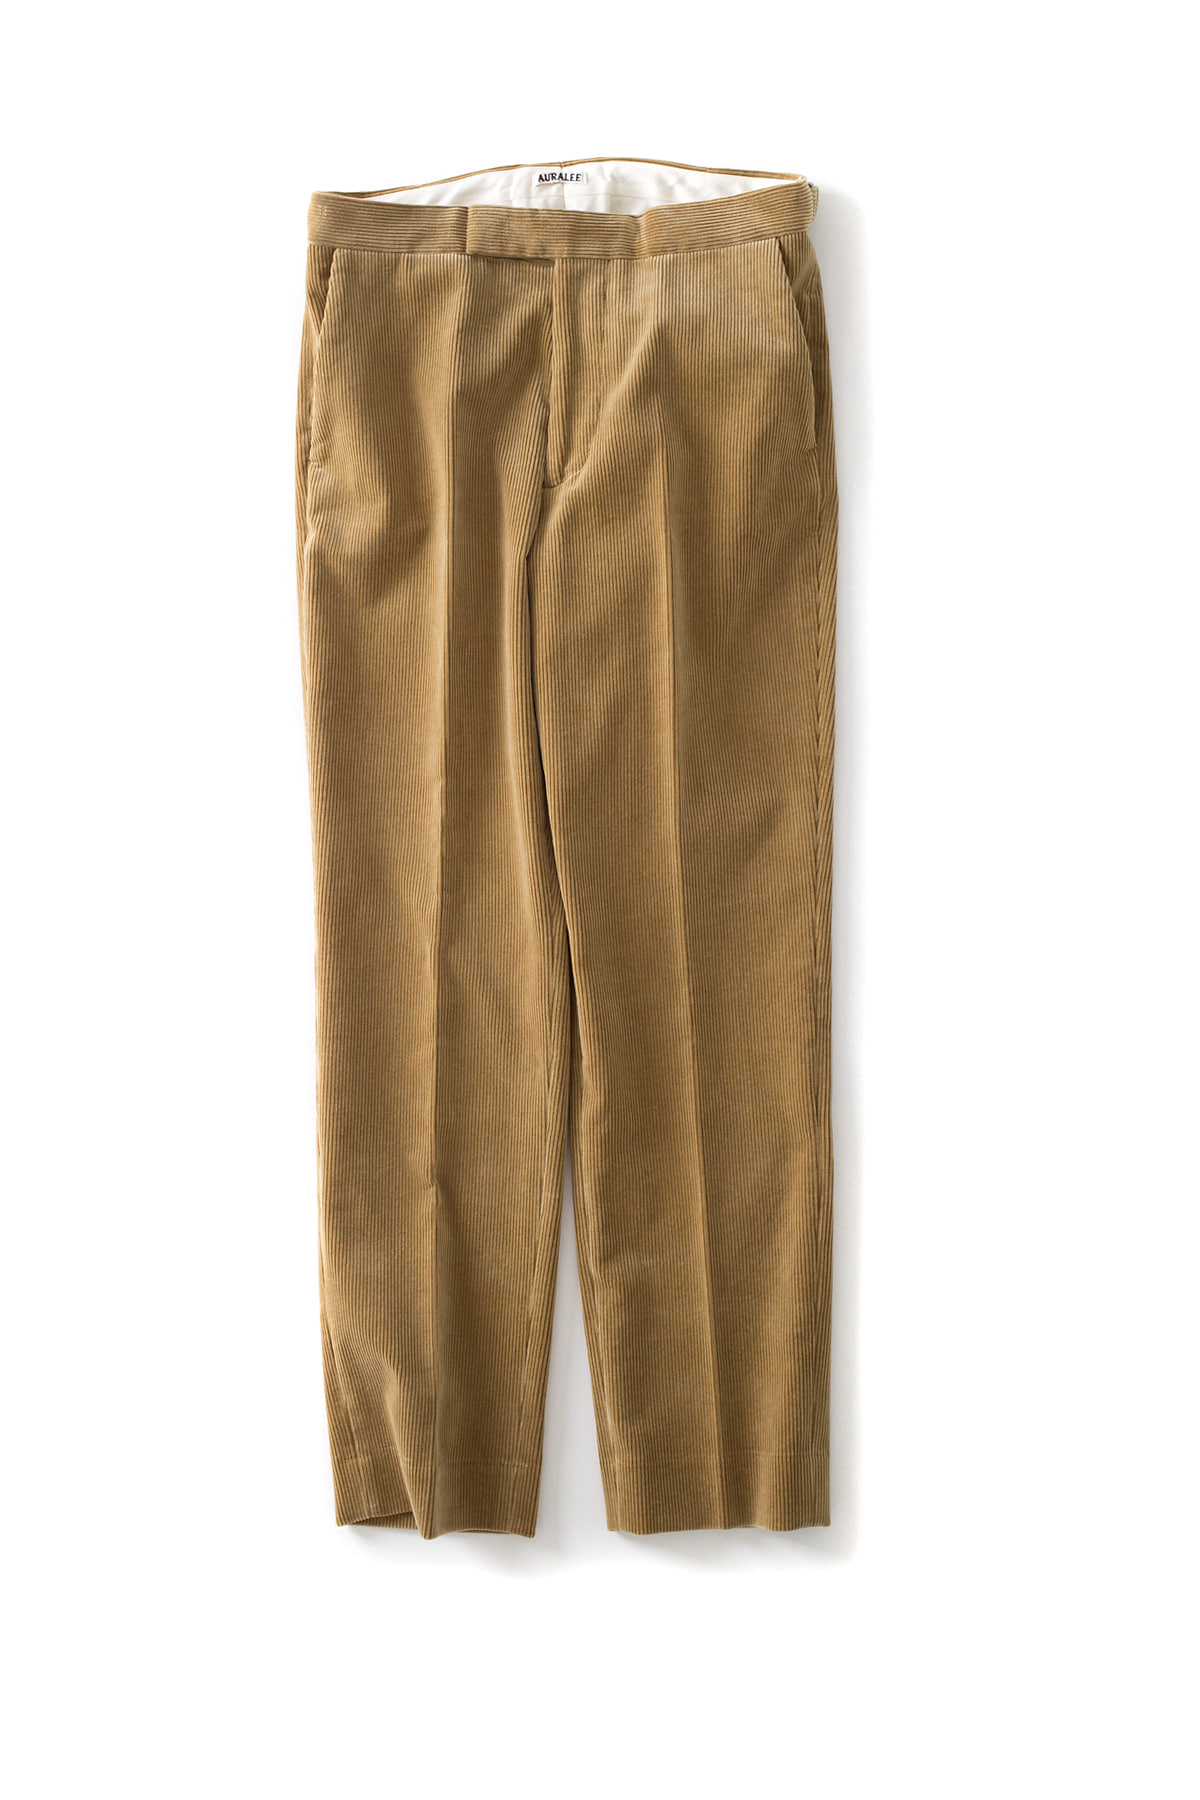 Auralee : Washed Corduroy Tapered Slacks (Camel Beige)